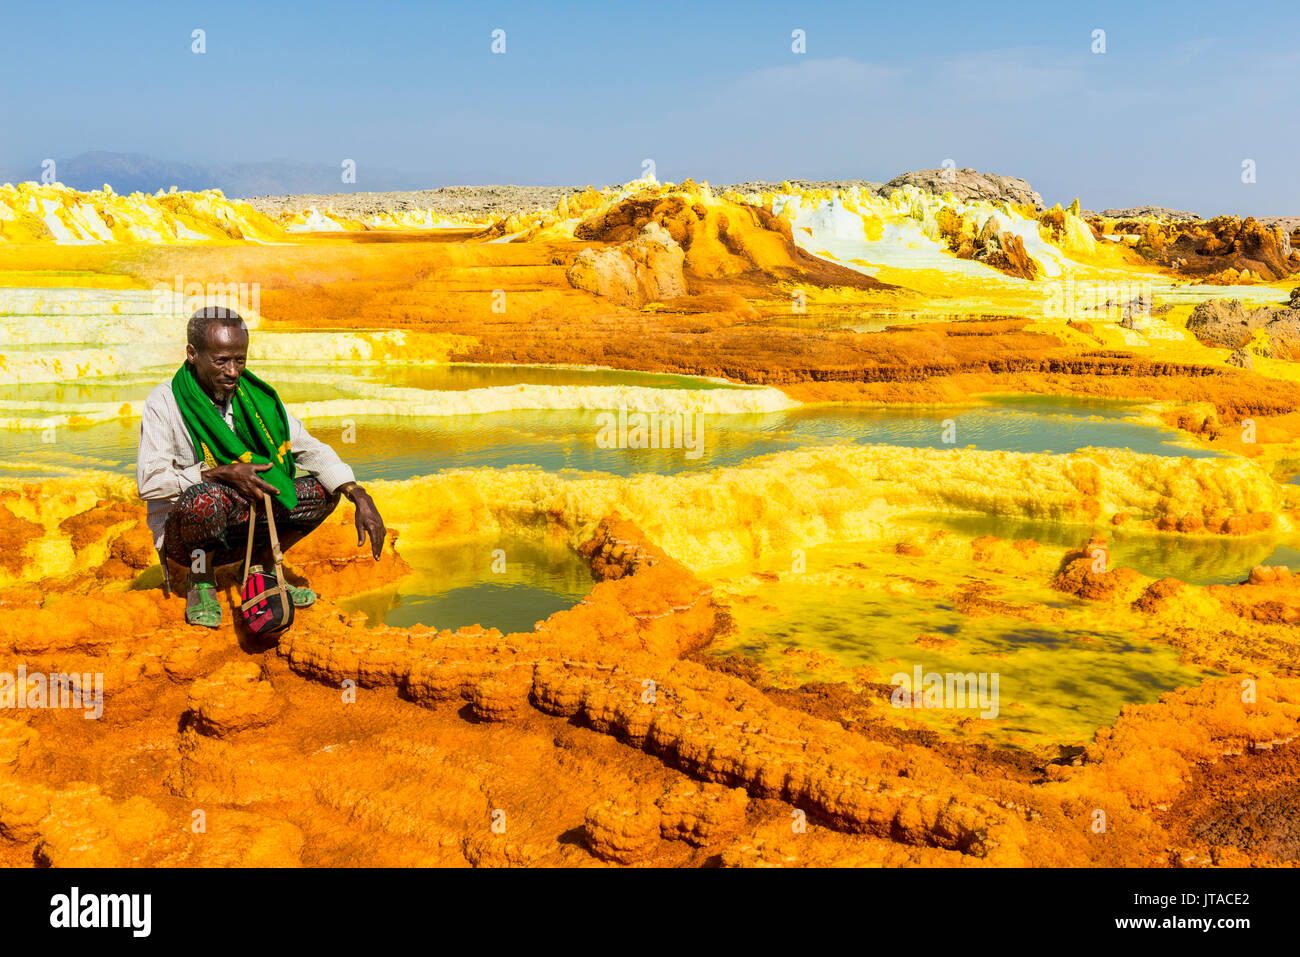 Colourful springs of acid in Dallol, hottest place on earth, Danakil depression, Ethiopia, Africa - Stock Image